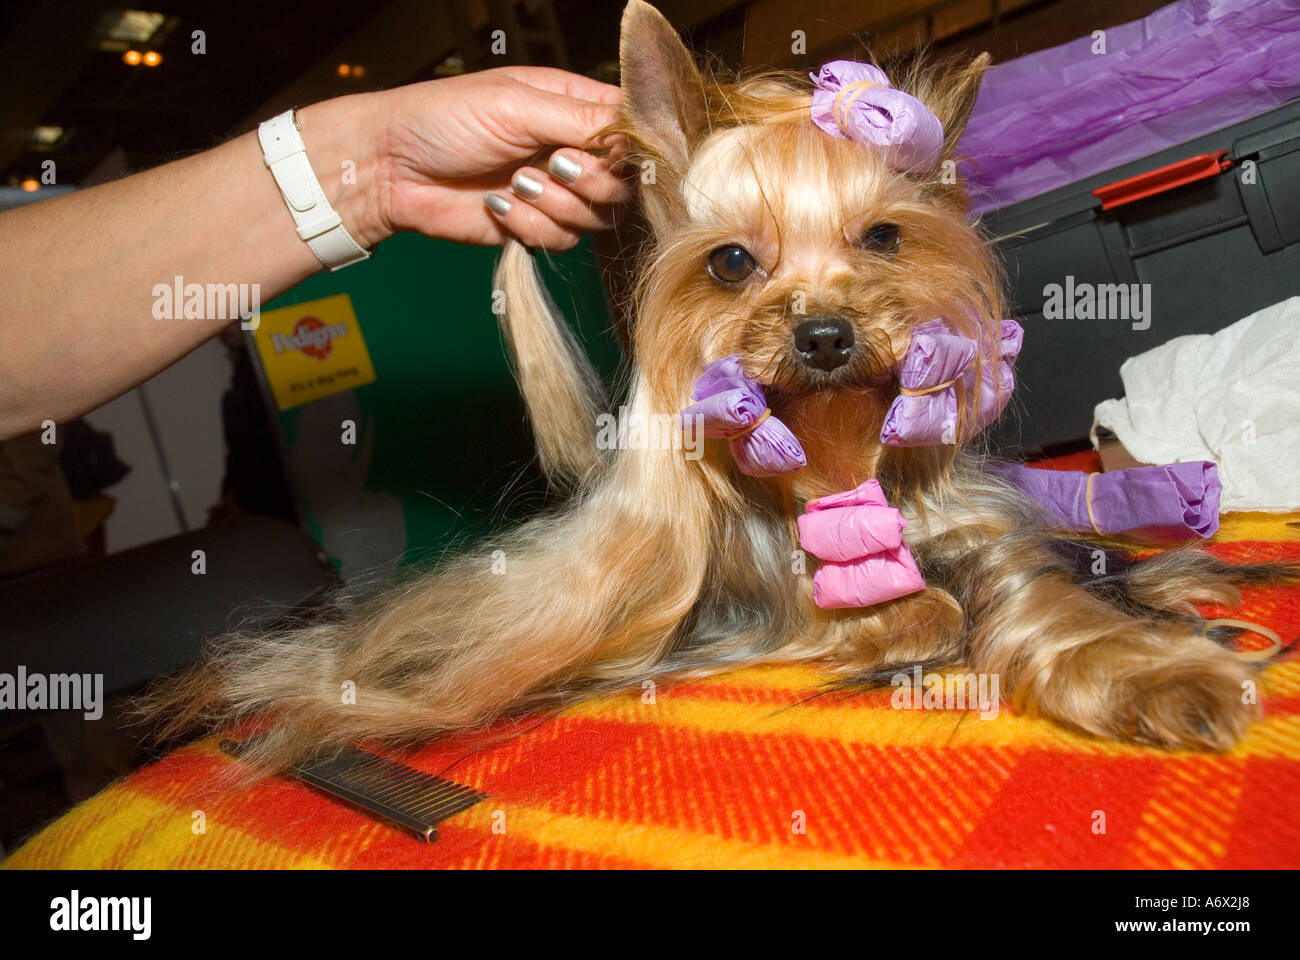 A Yorkshire Terrier being groomed at Crufts - Stock Image